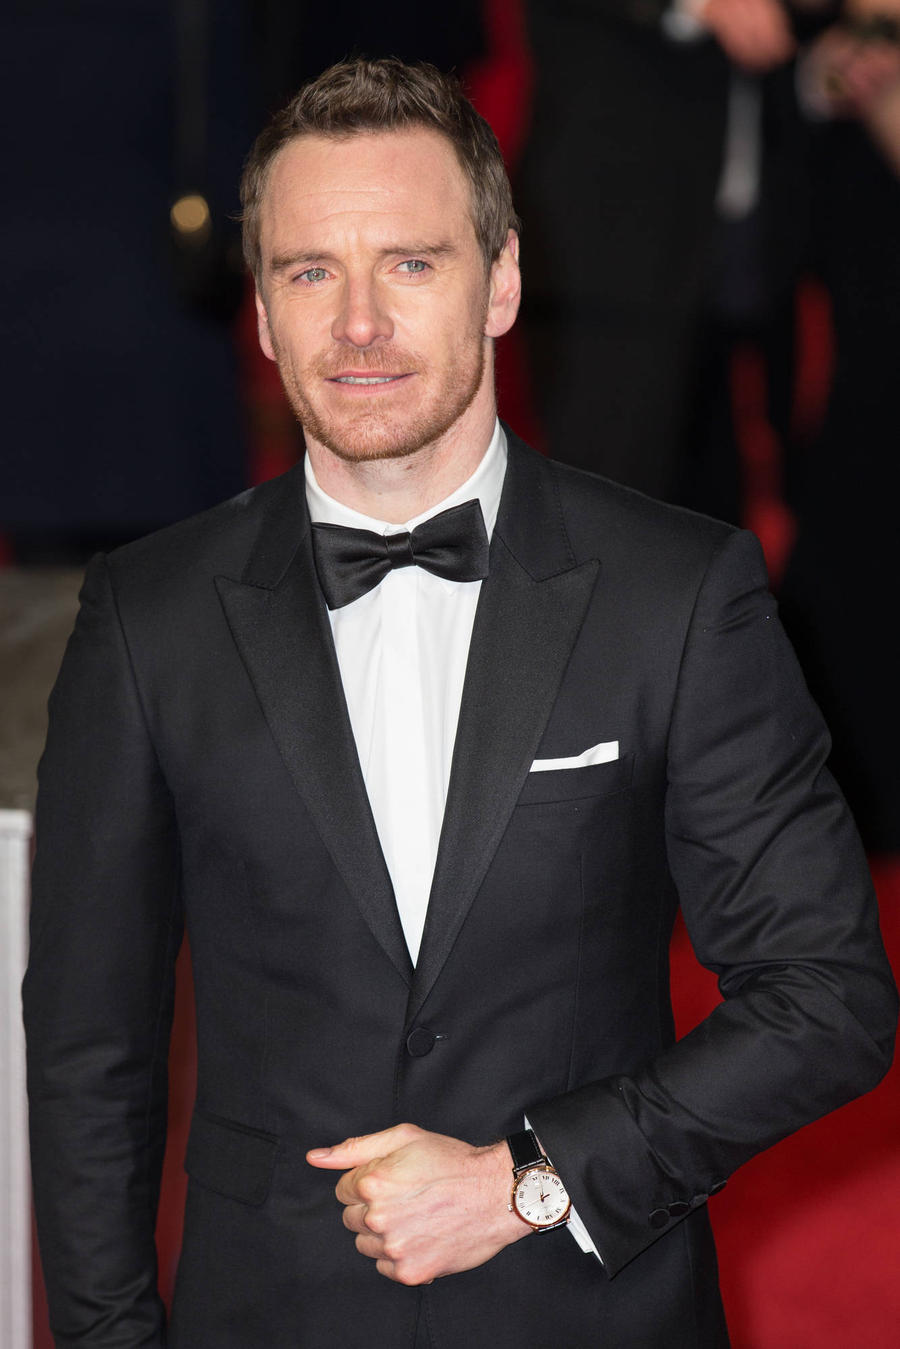 Michael Fassbender Cringes With Embarrassment At Tiff Career Retrospective